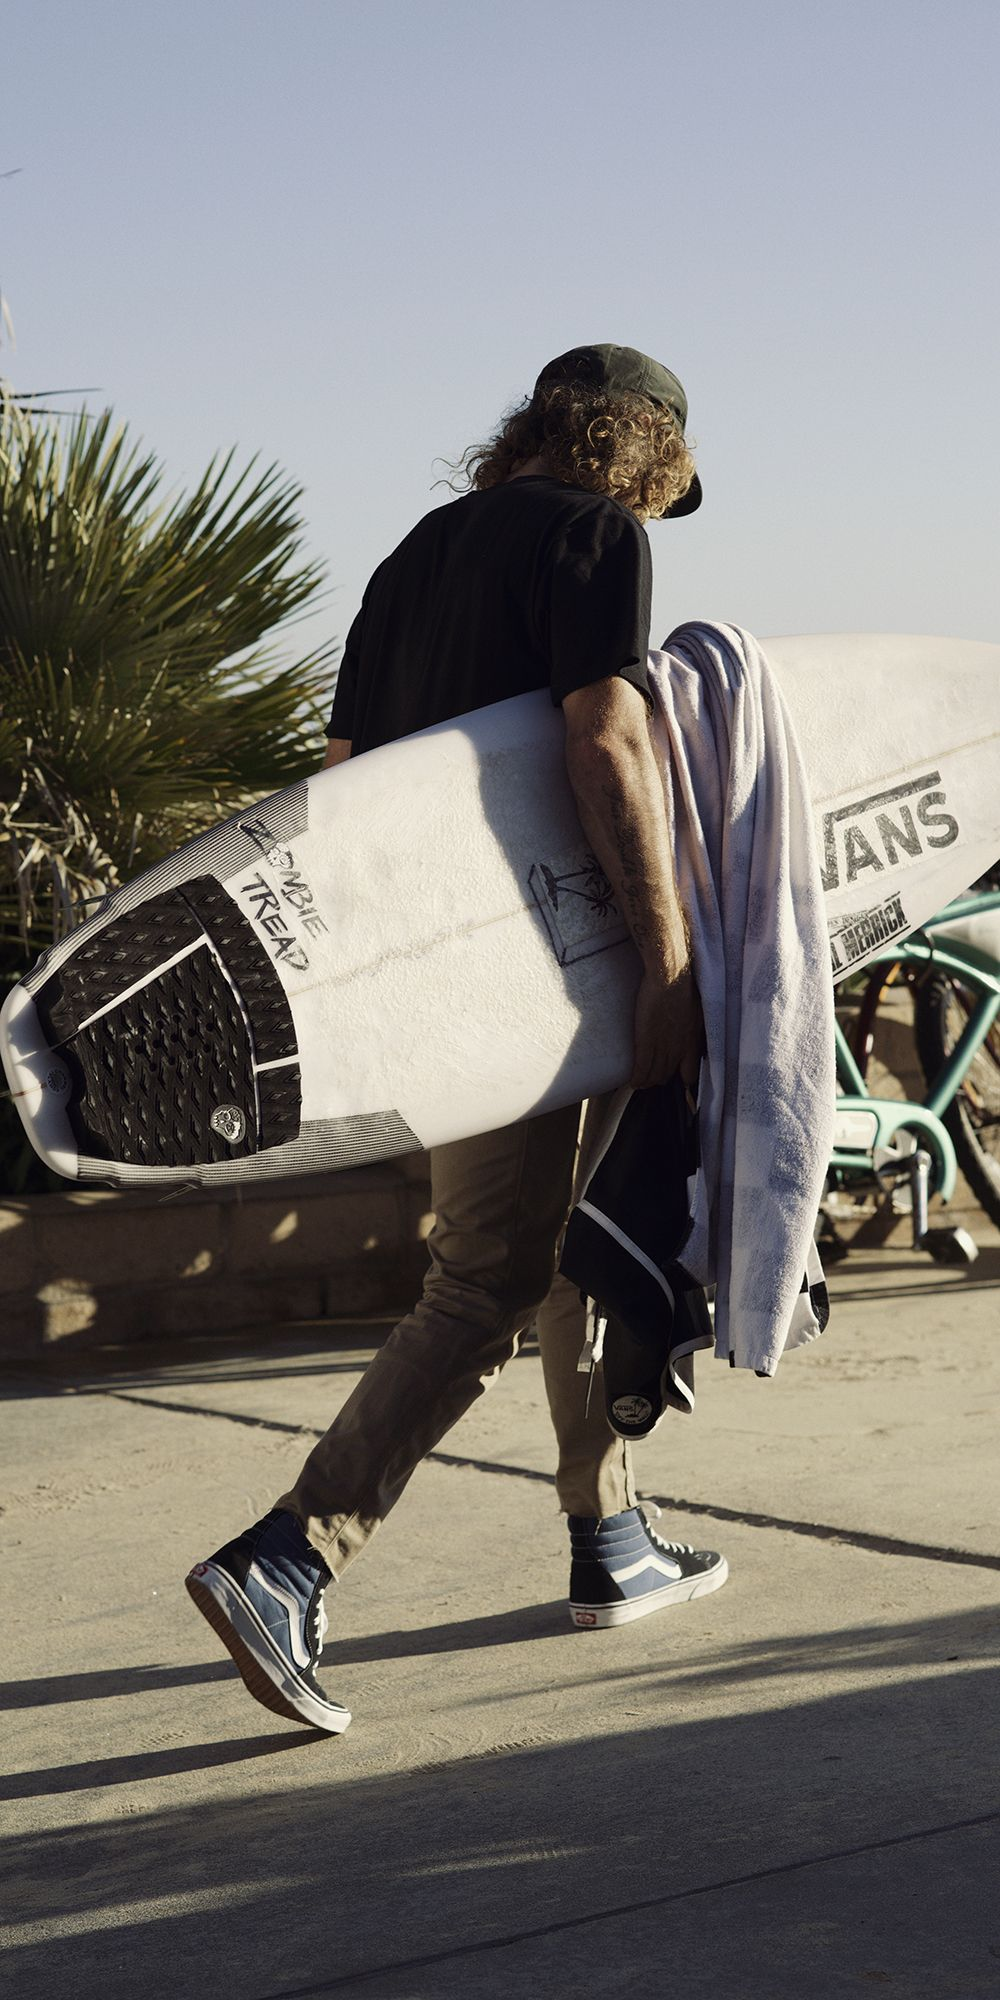 3795a6a15d5c45 Vans Surf s Wade Goodall in the Navy White Sk8-Hi. Shop all Vans Sk8-Hi  styles now.